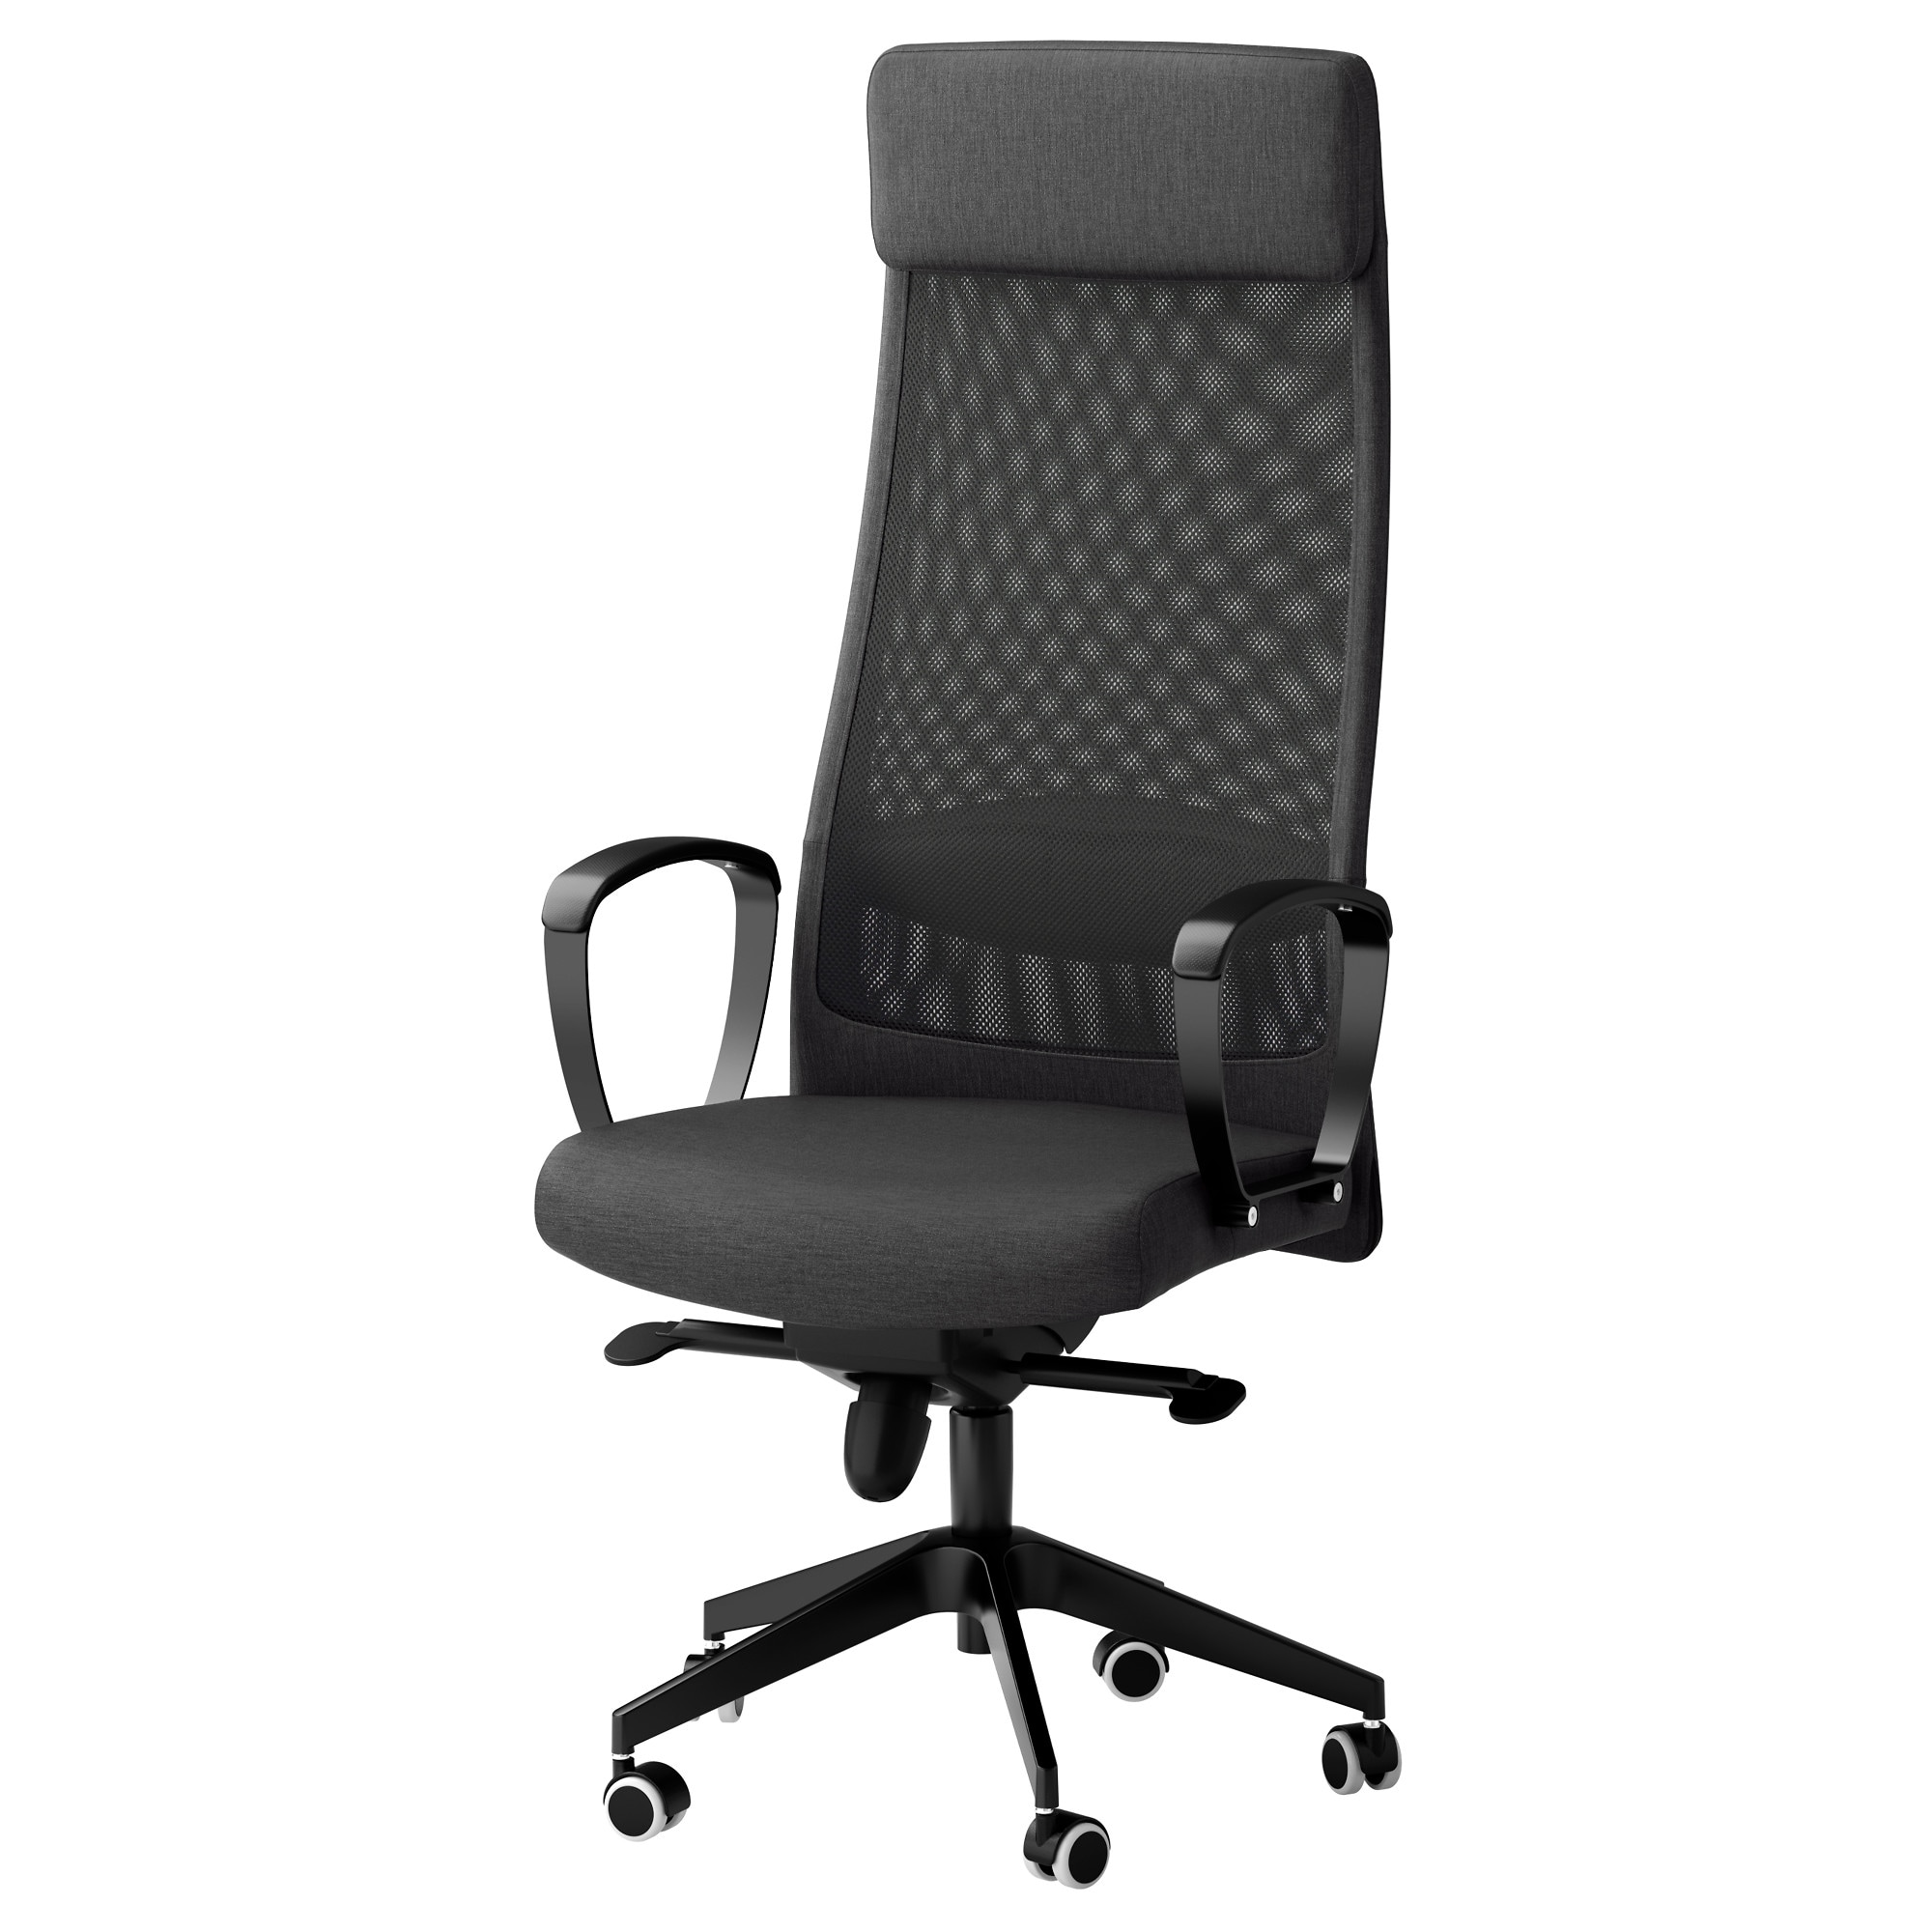 ikea red office chair. Ikea Red Office Chair S